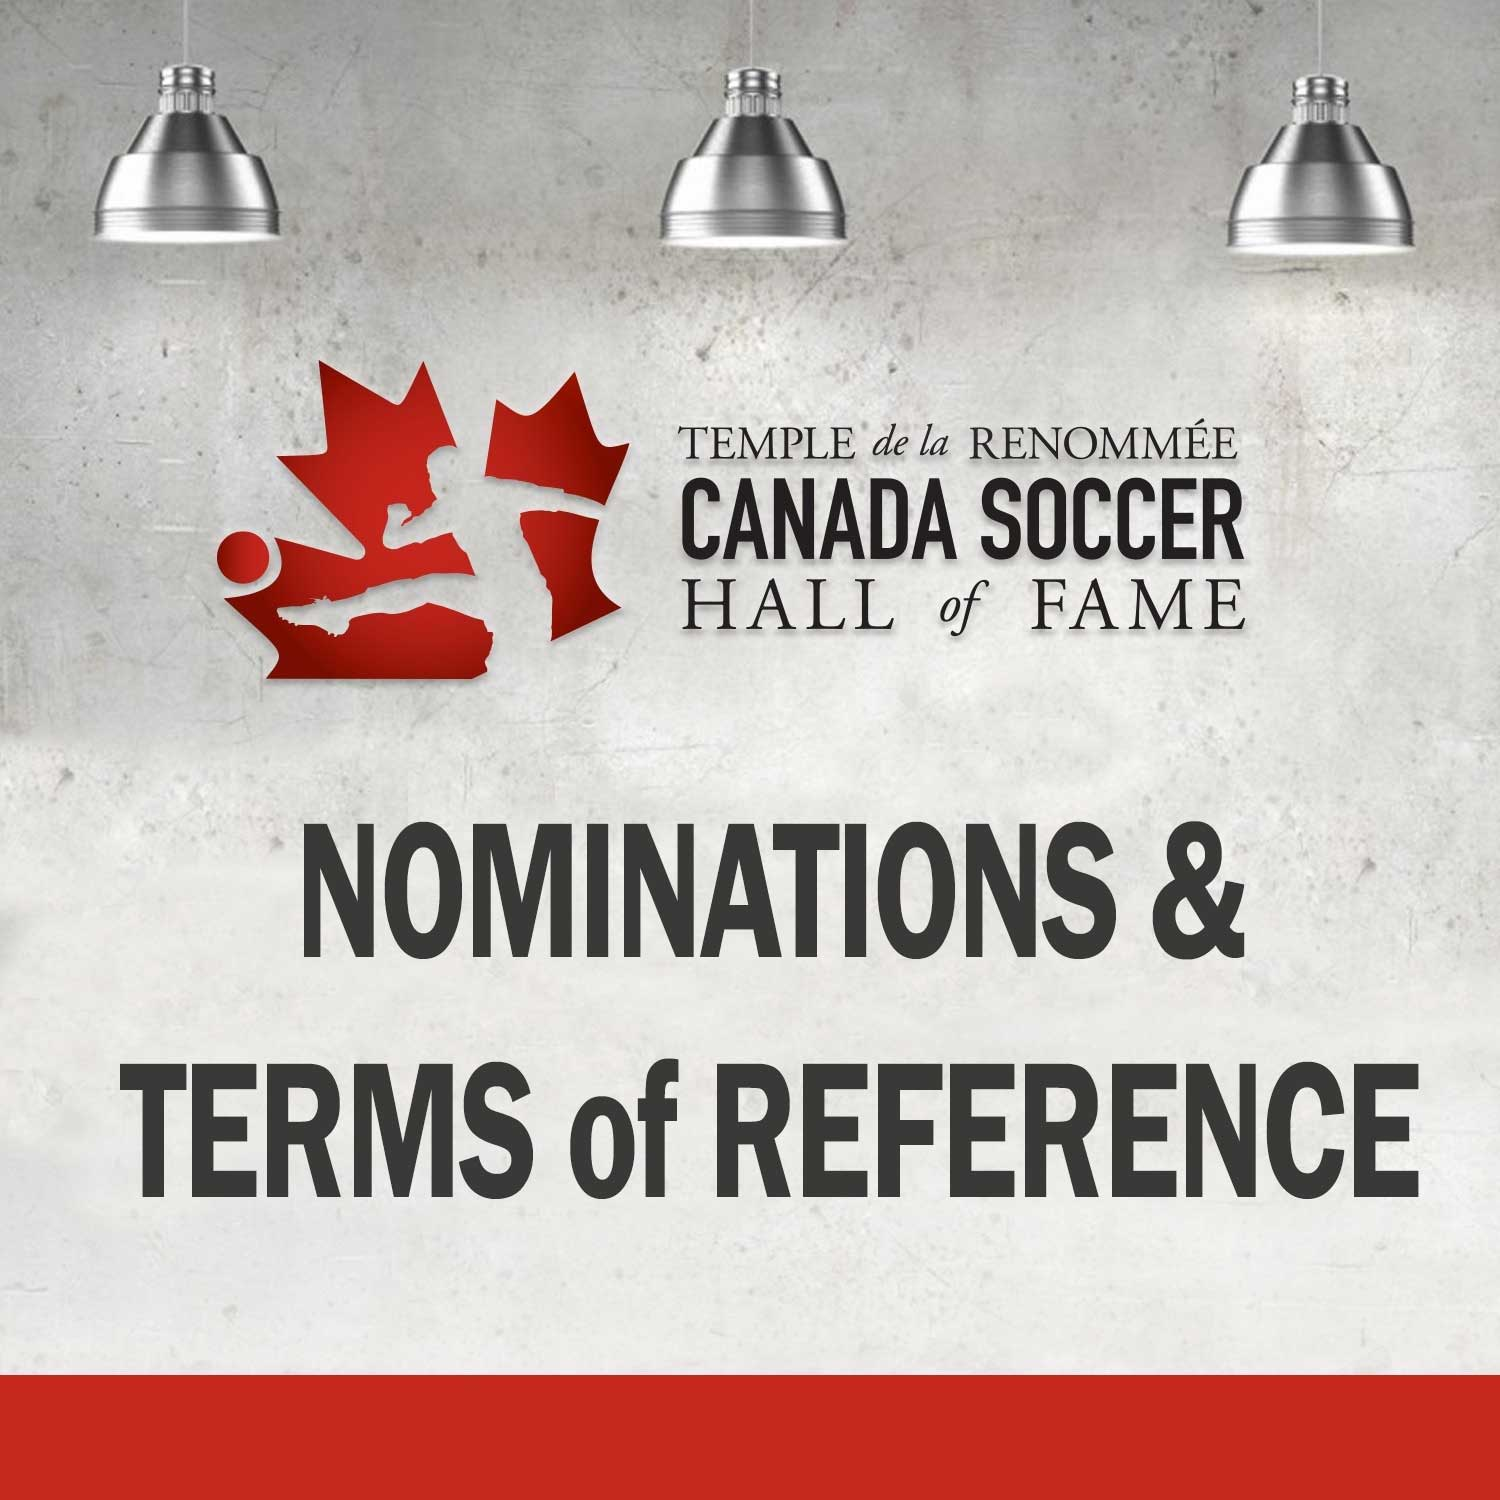 Nominations & Terms of Reference